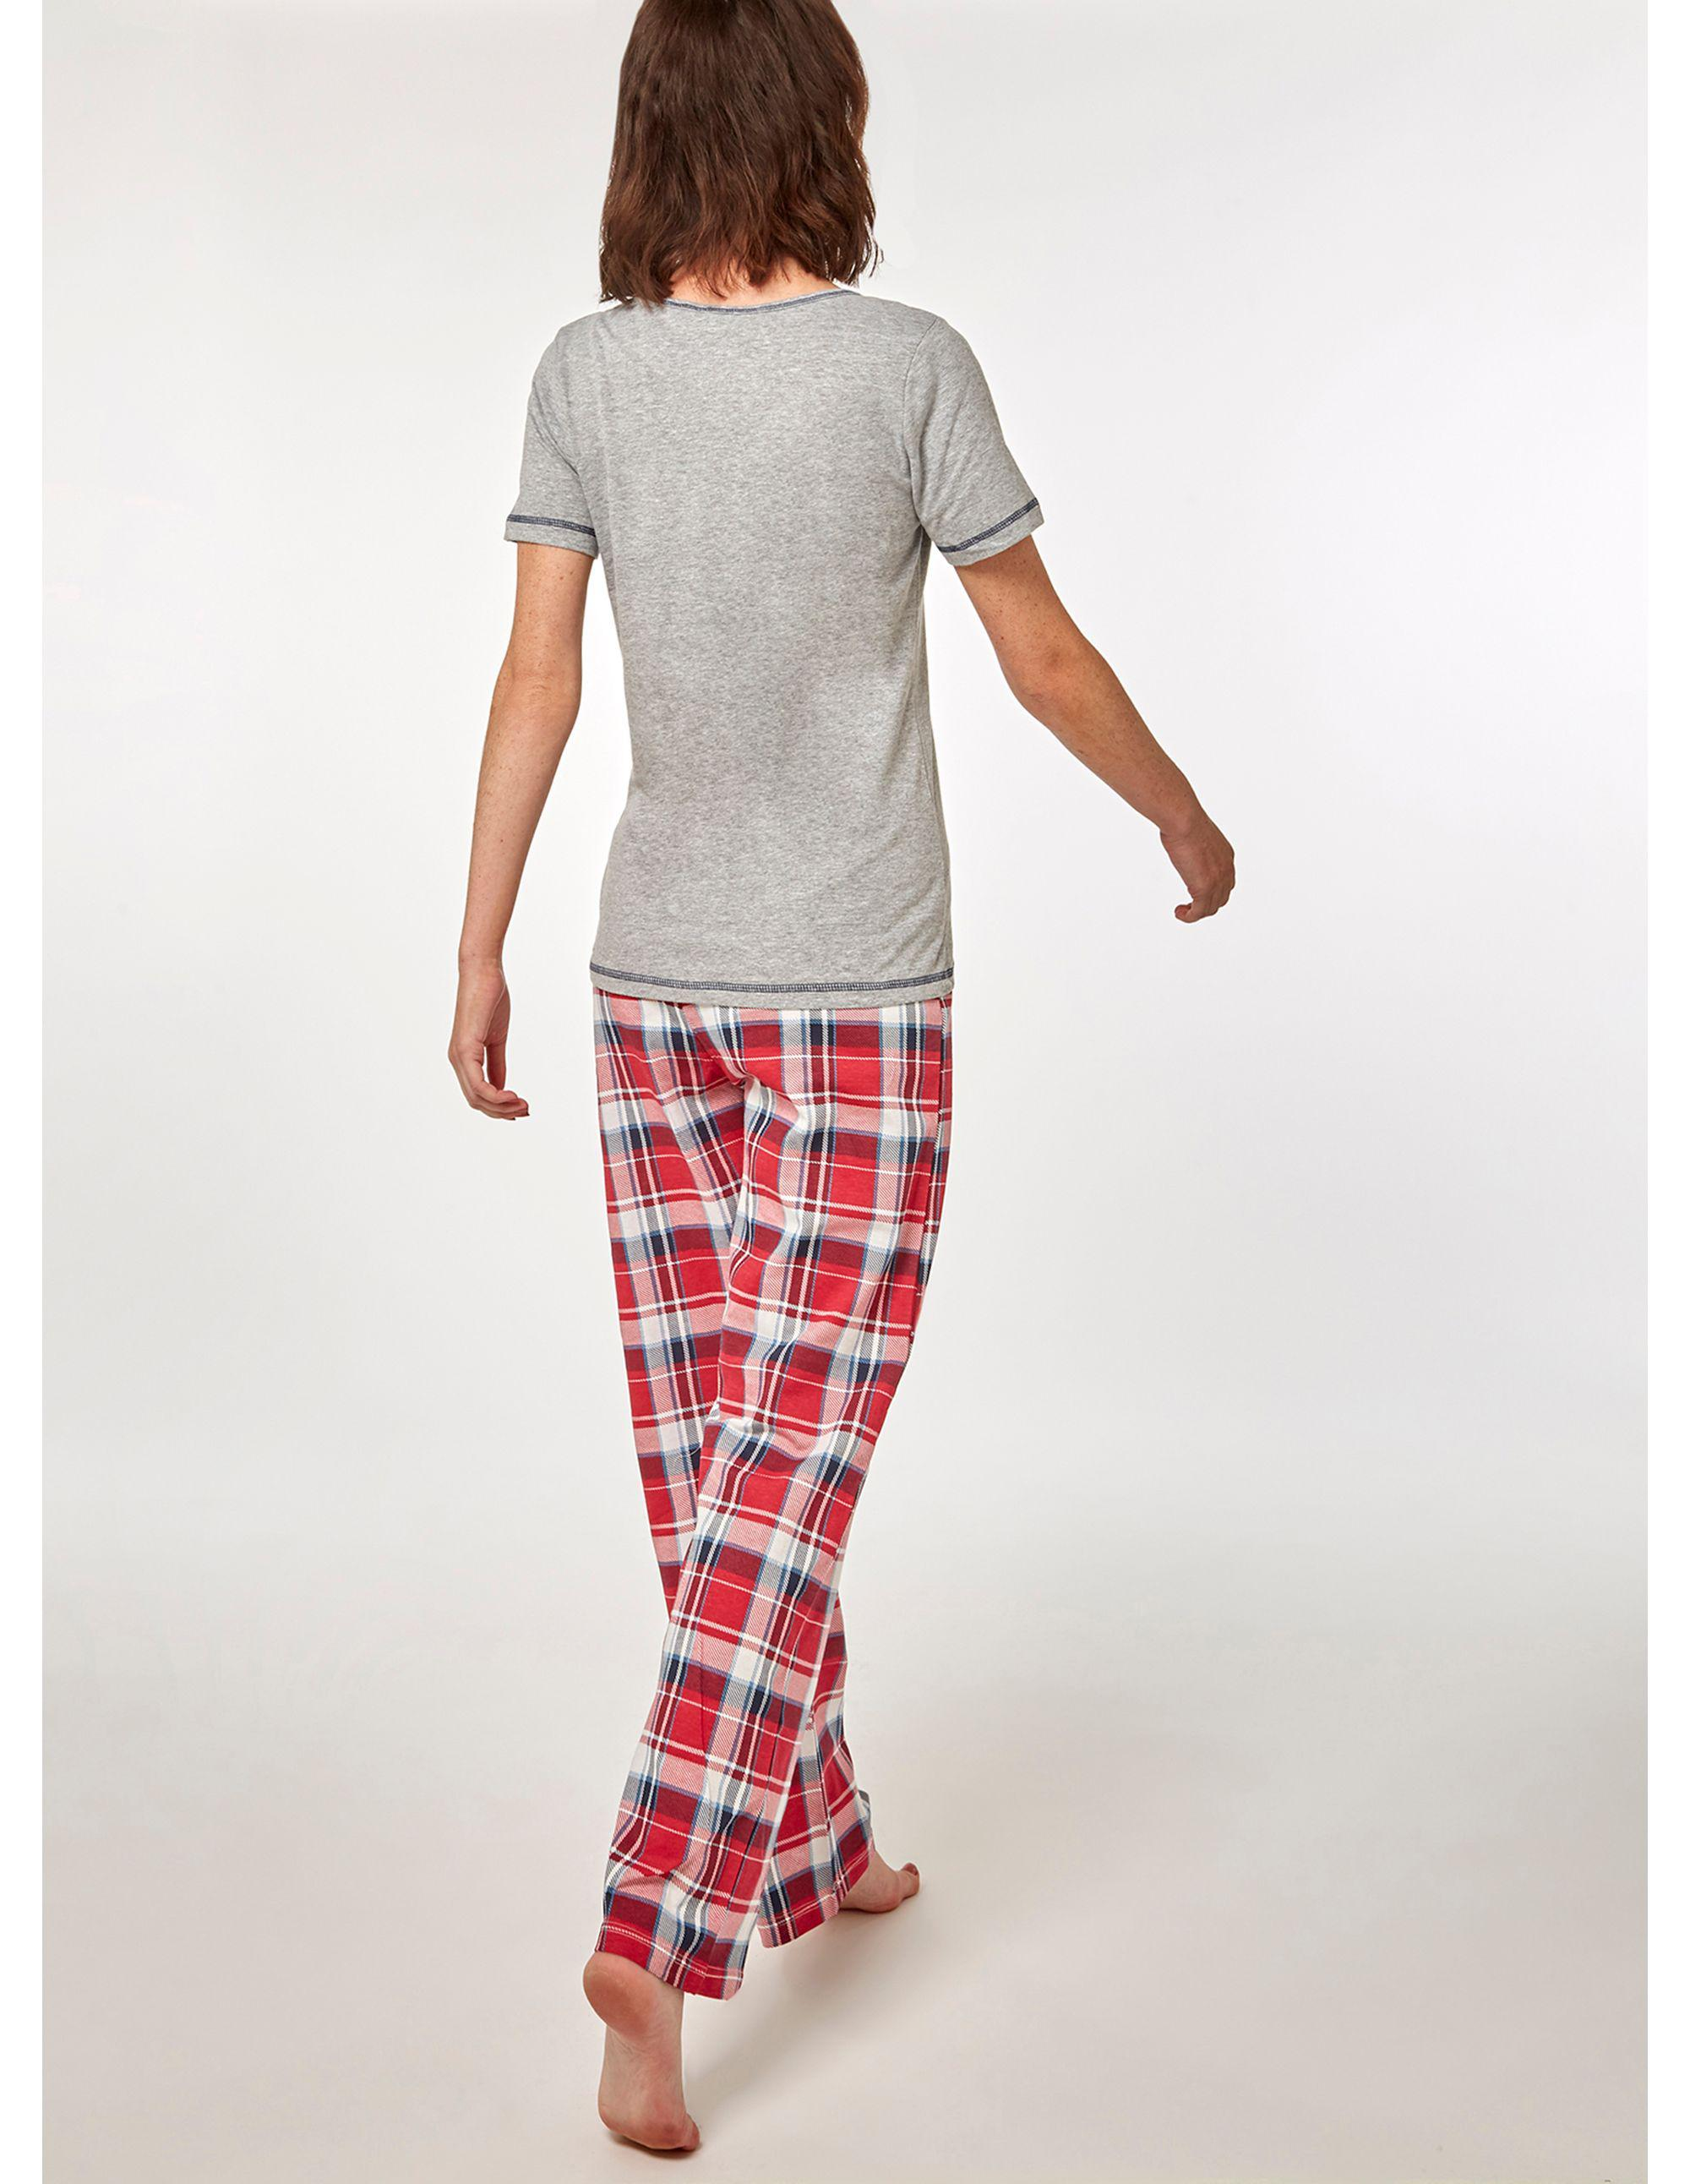 8a55357ab6 Dorothy Perkins Grey Let It Snow Pyjamas in Gray - Save 25.0% - Lyst